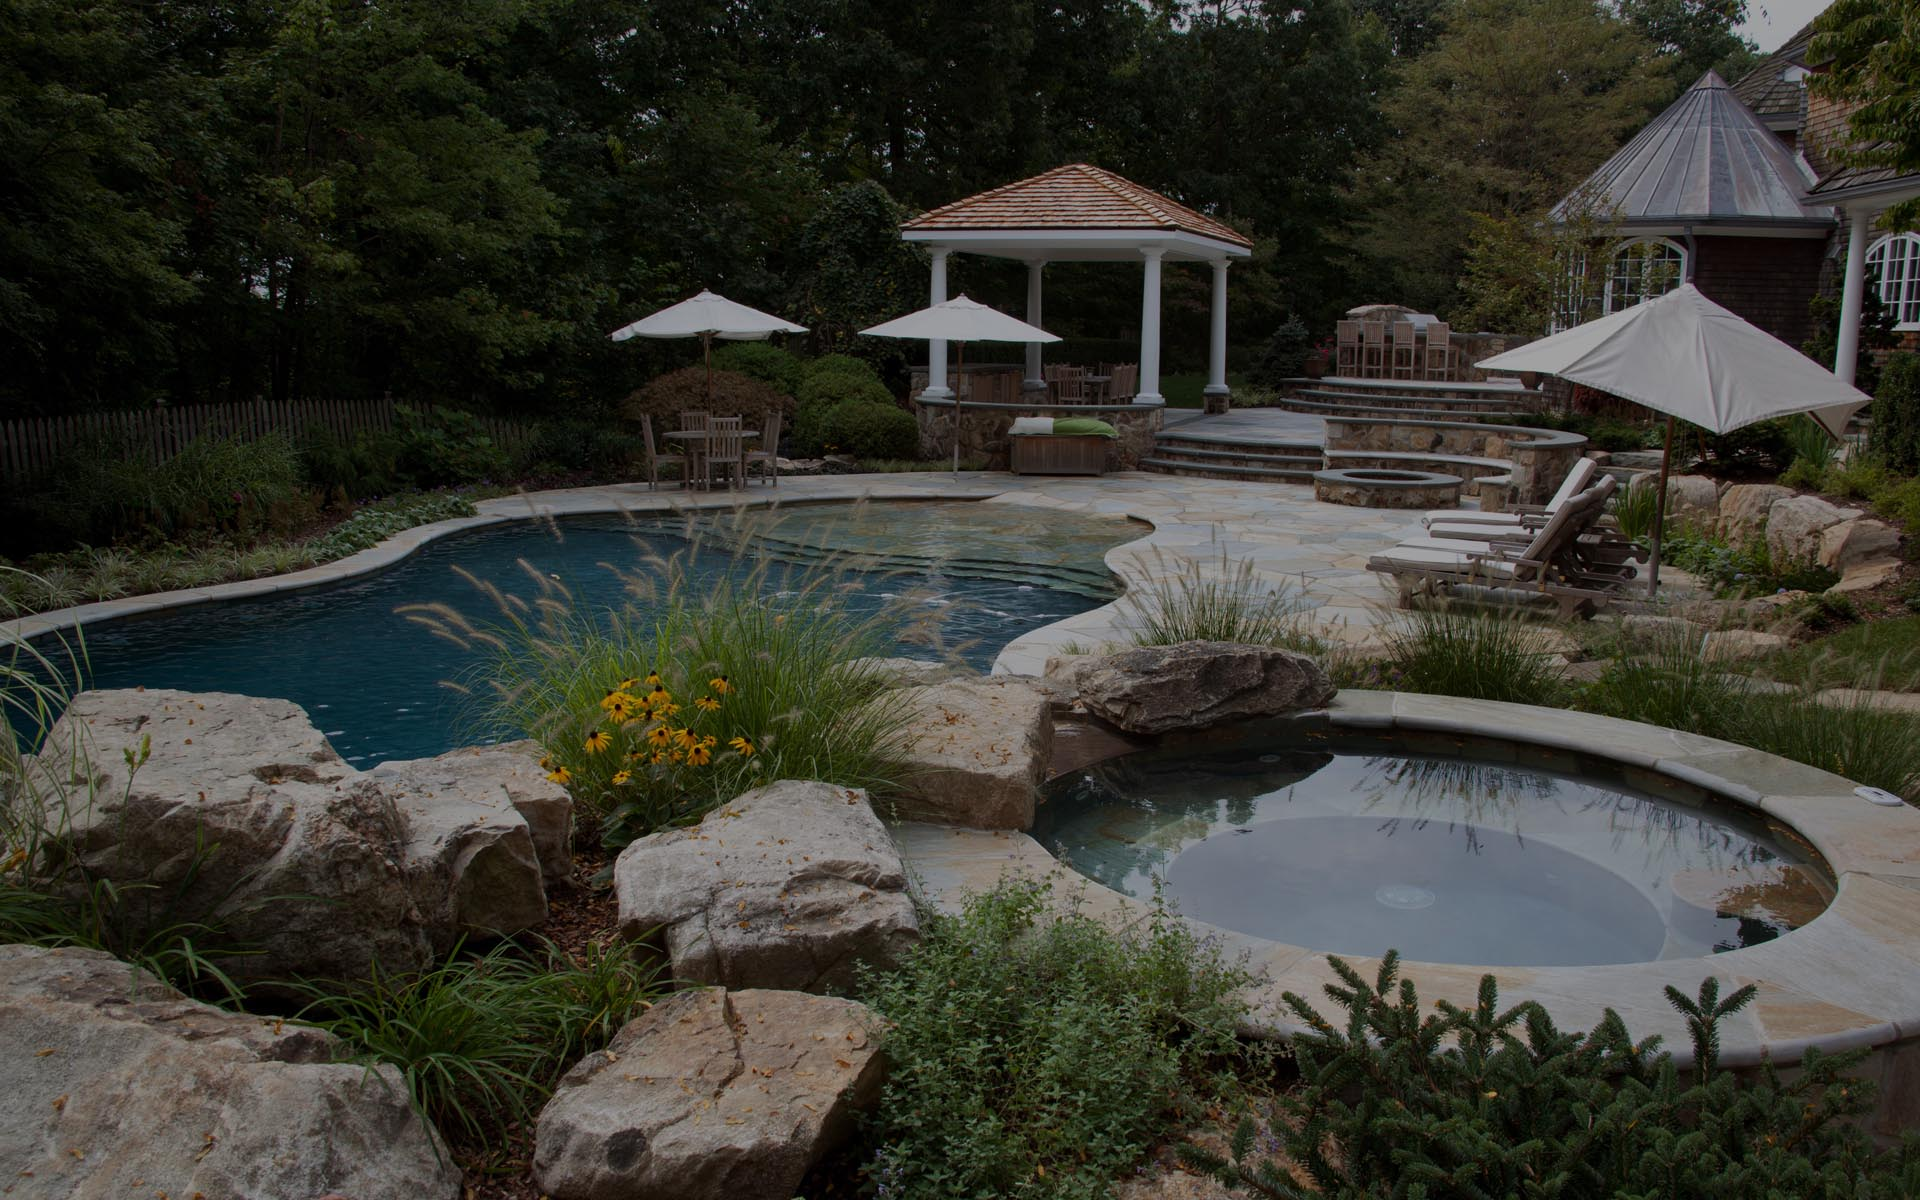 North Jersey's Leader in Swimming Pool Concepts